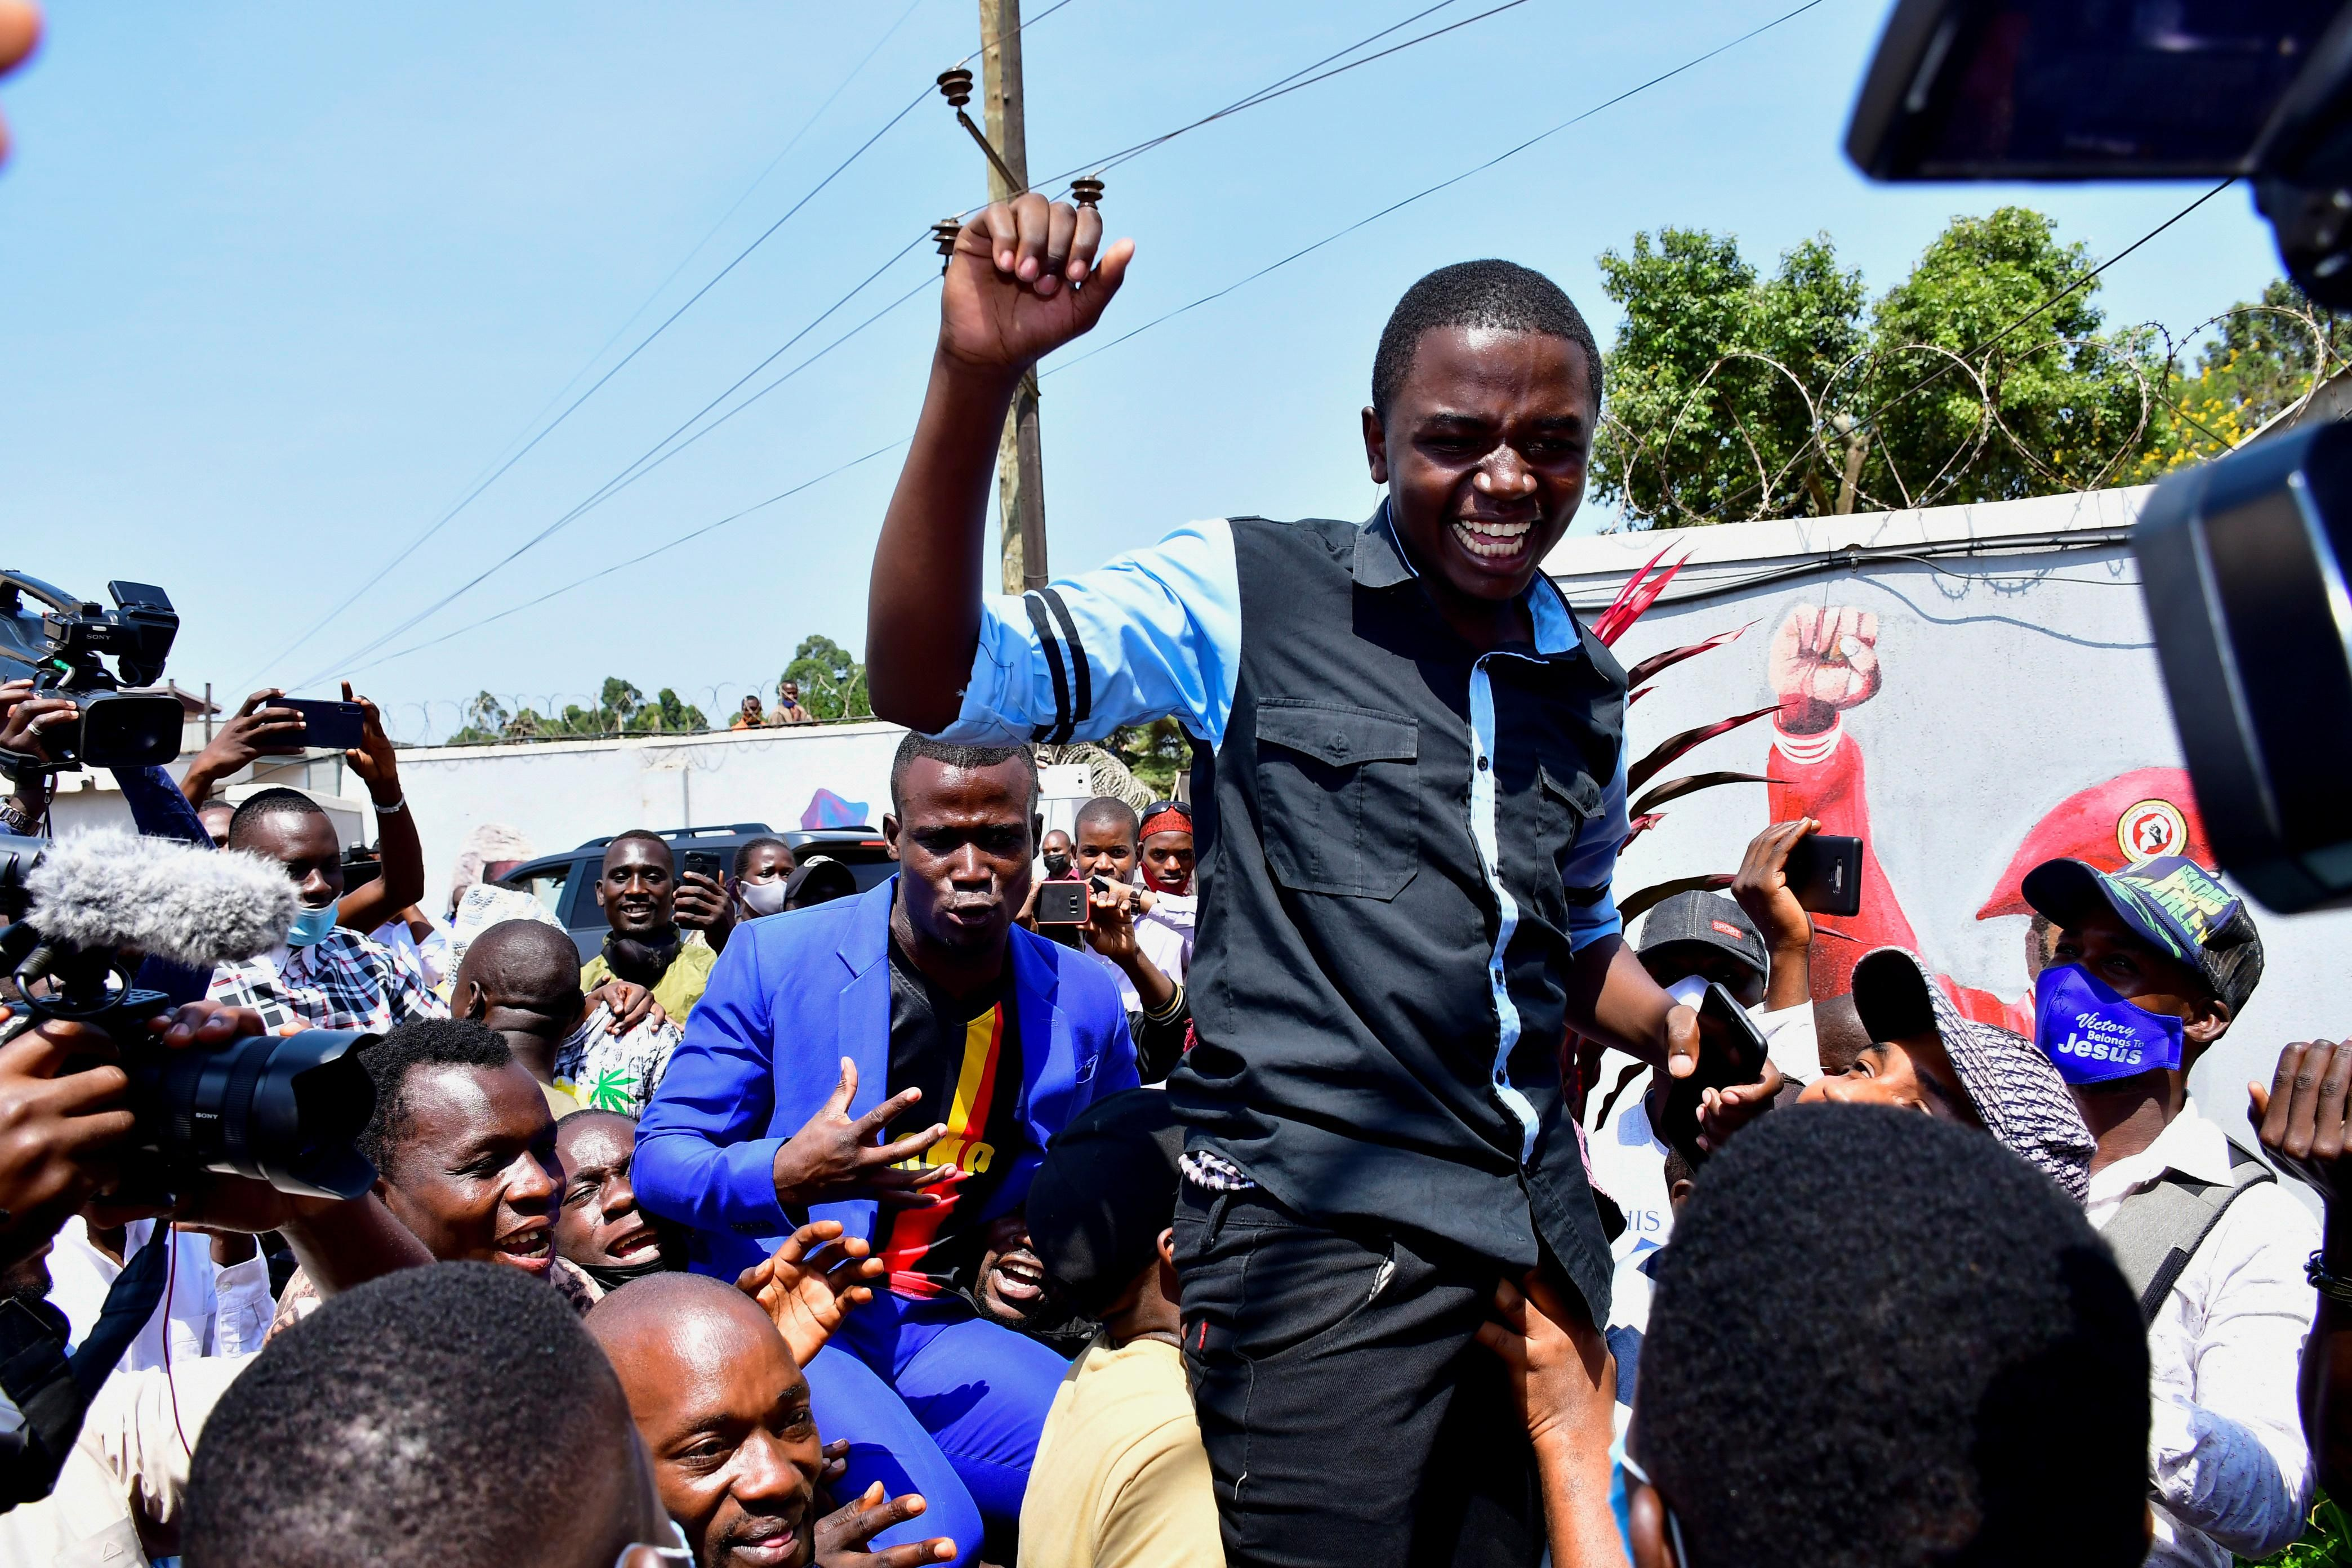 A member of former presidential candidate Robert Kyagulanyi also known as Bobi Wine's security detail celebrates after being released on bail, at the party's headquarters in Kampala, Uganda June 14, 2021.